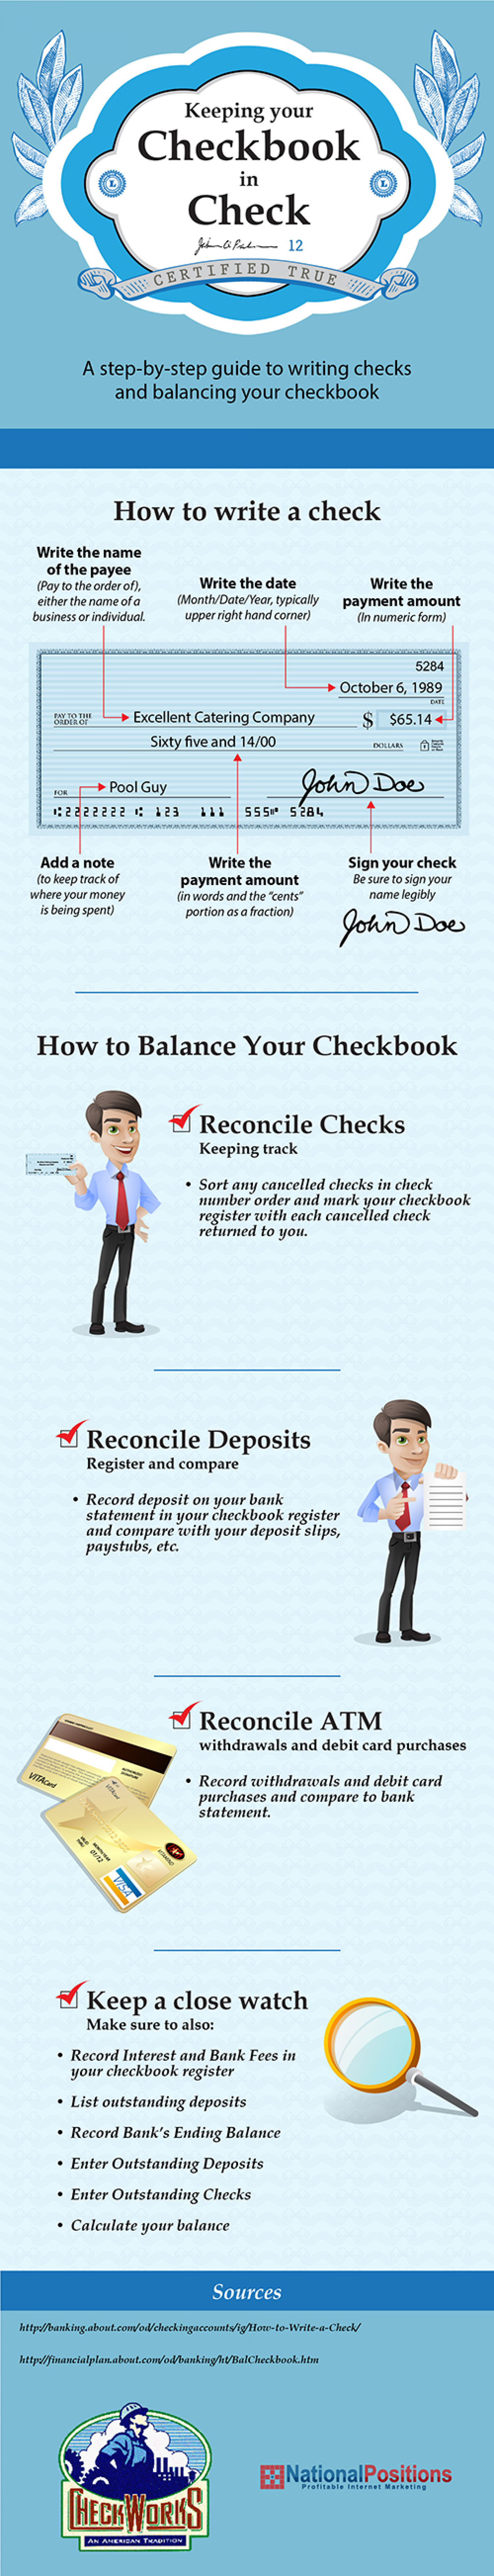 Keeping Your Checkbook in Check Infographic